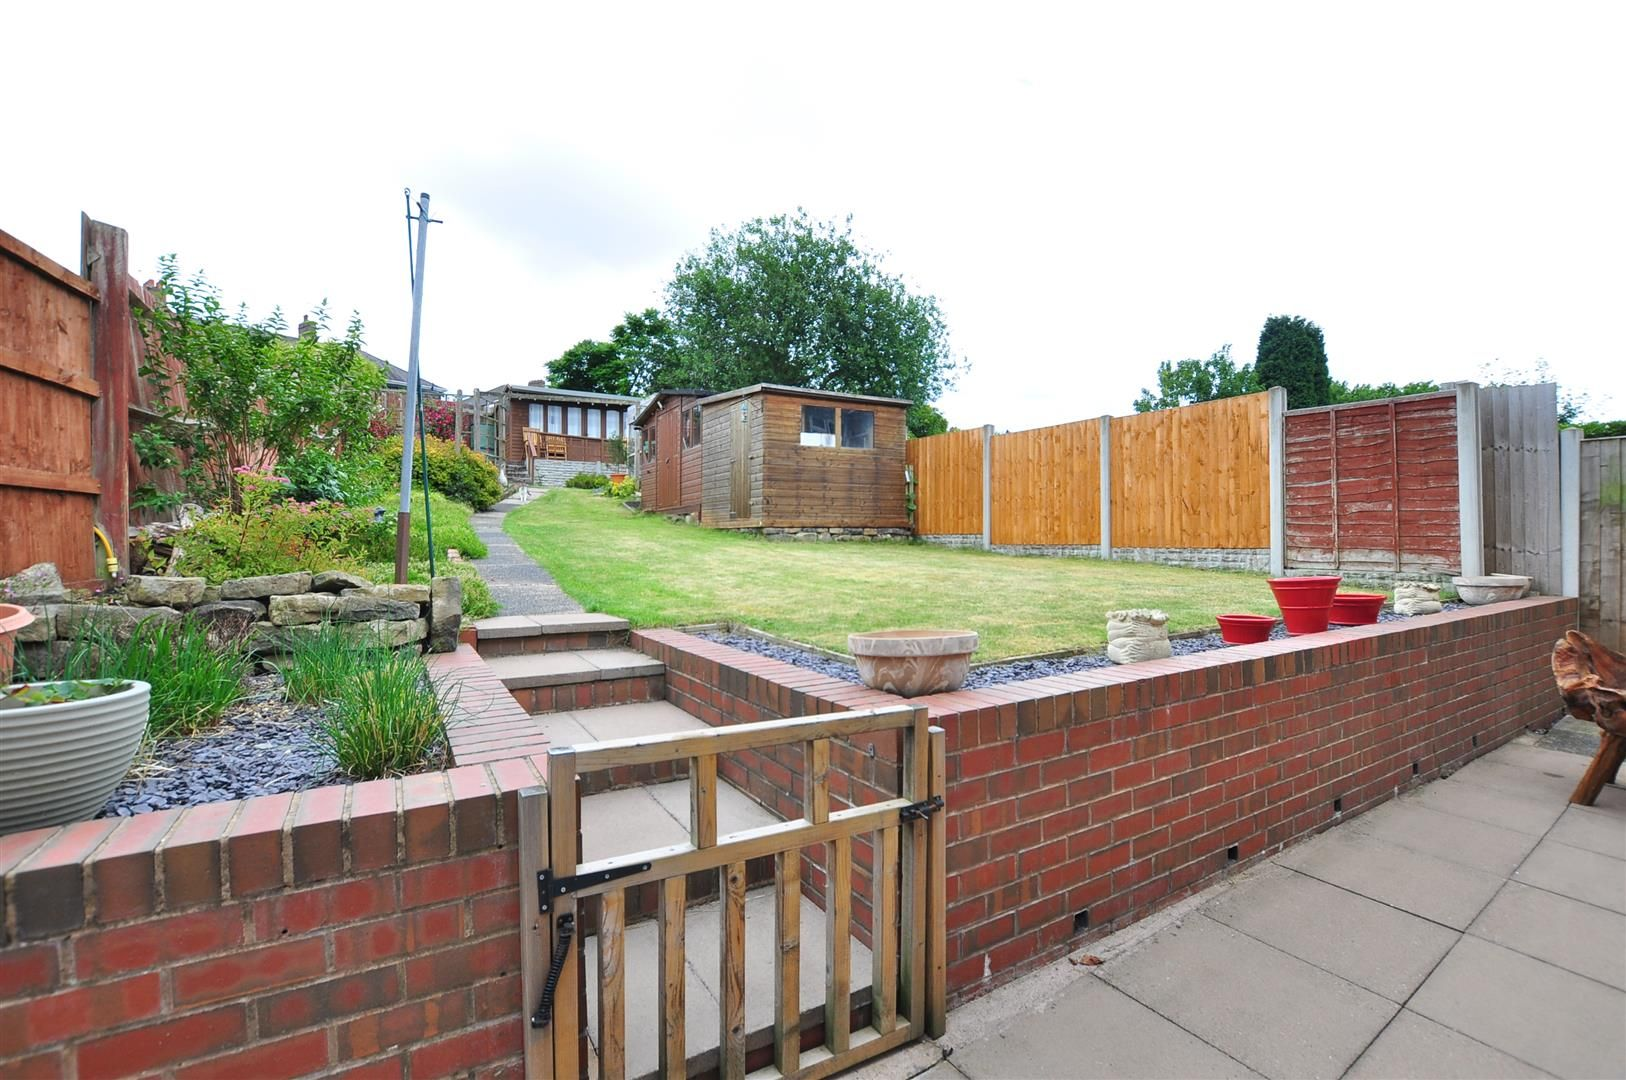 3 bed semi-detached for sale in Lower Gornal 15